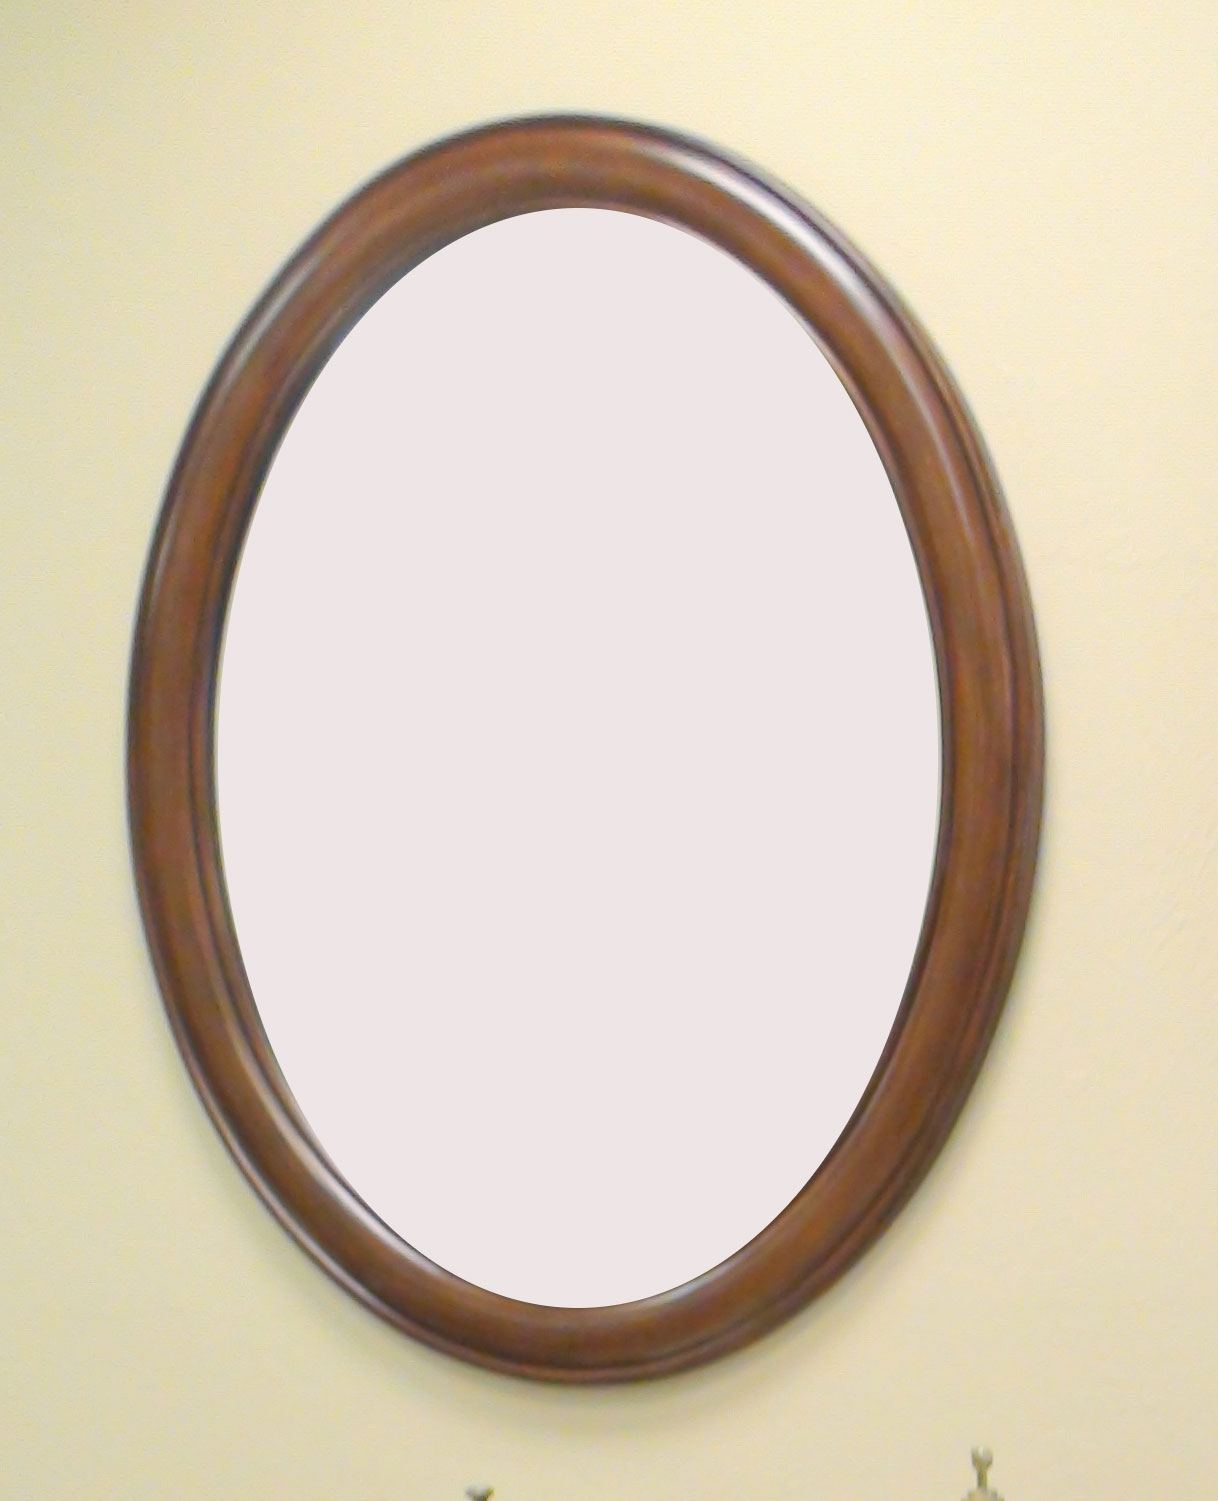 Oval Wood Framed Wall Mirrors